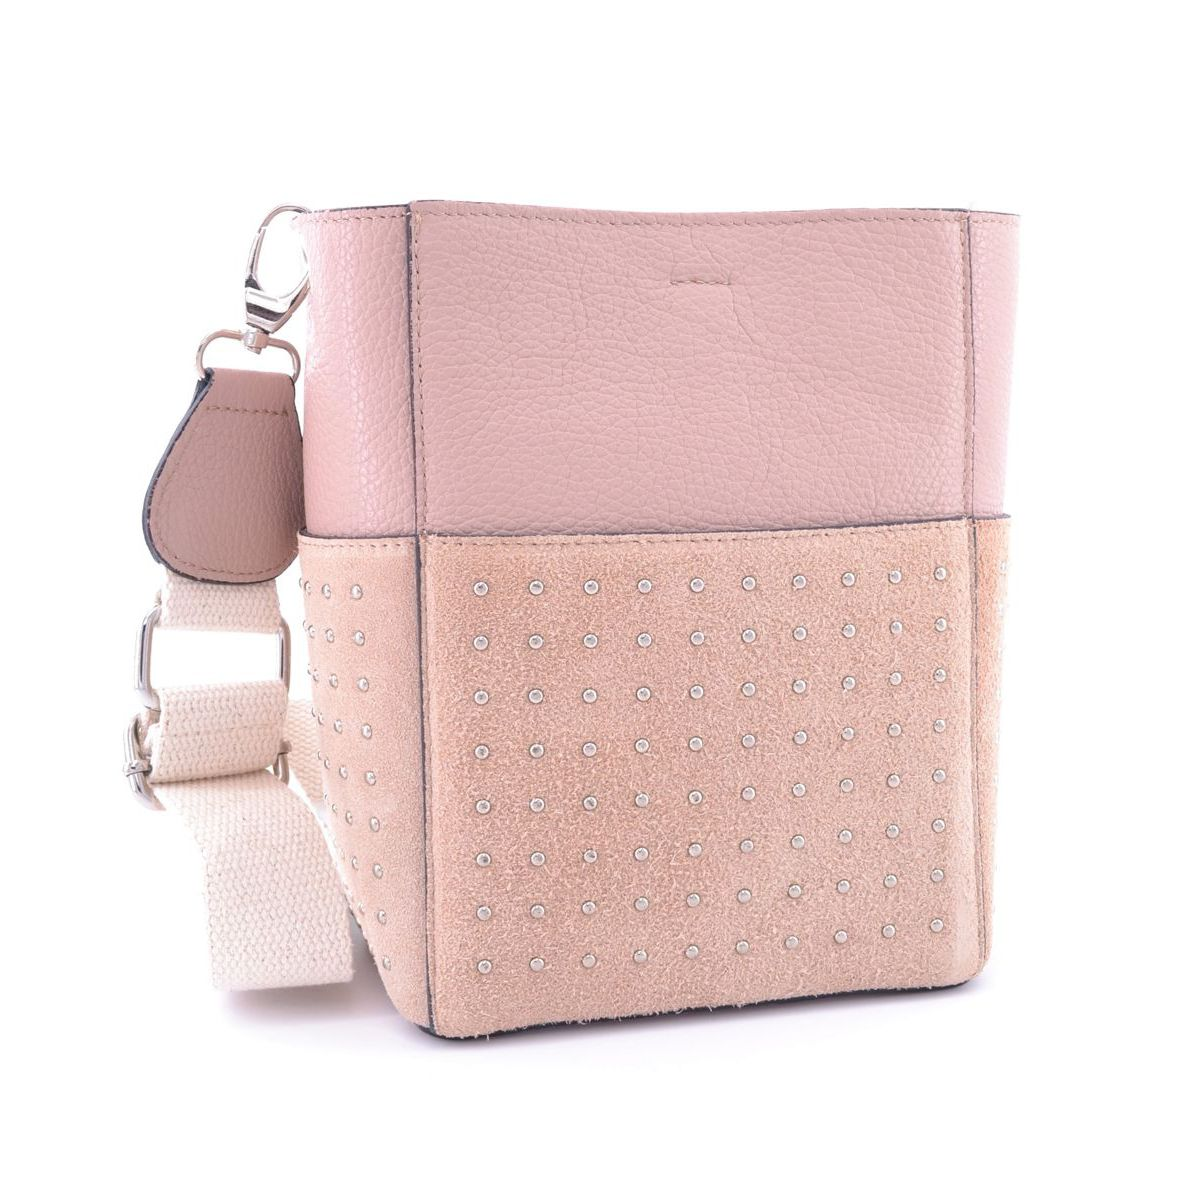 Studded leather bucket with cotton shoulder strap Pink BRASS Workshop